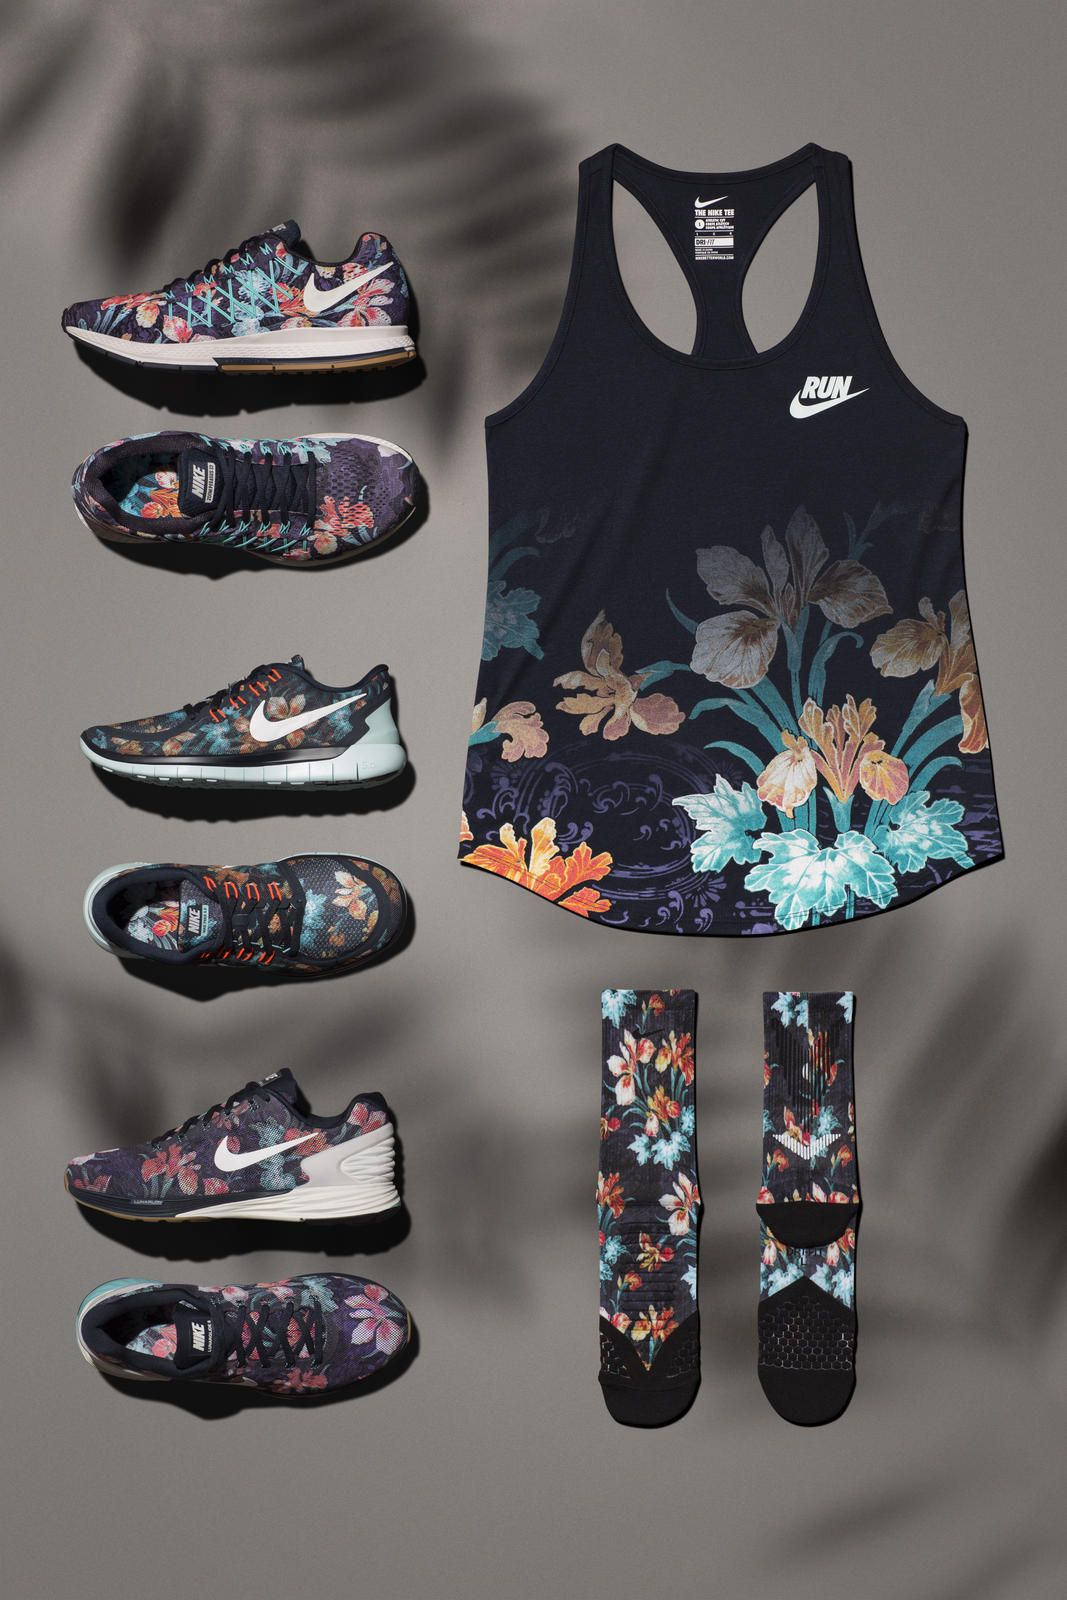 NIKE WOMENS vivid pink athletic shoes Sz new NIKE WOMENS vivid pink  athletic Custom Nike Roshe Black and Gold splatter design* Custom Roshes*  Womens and ...